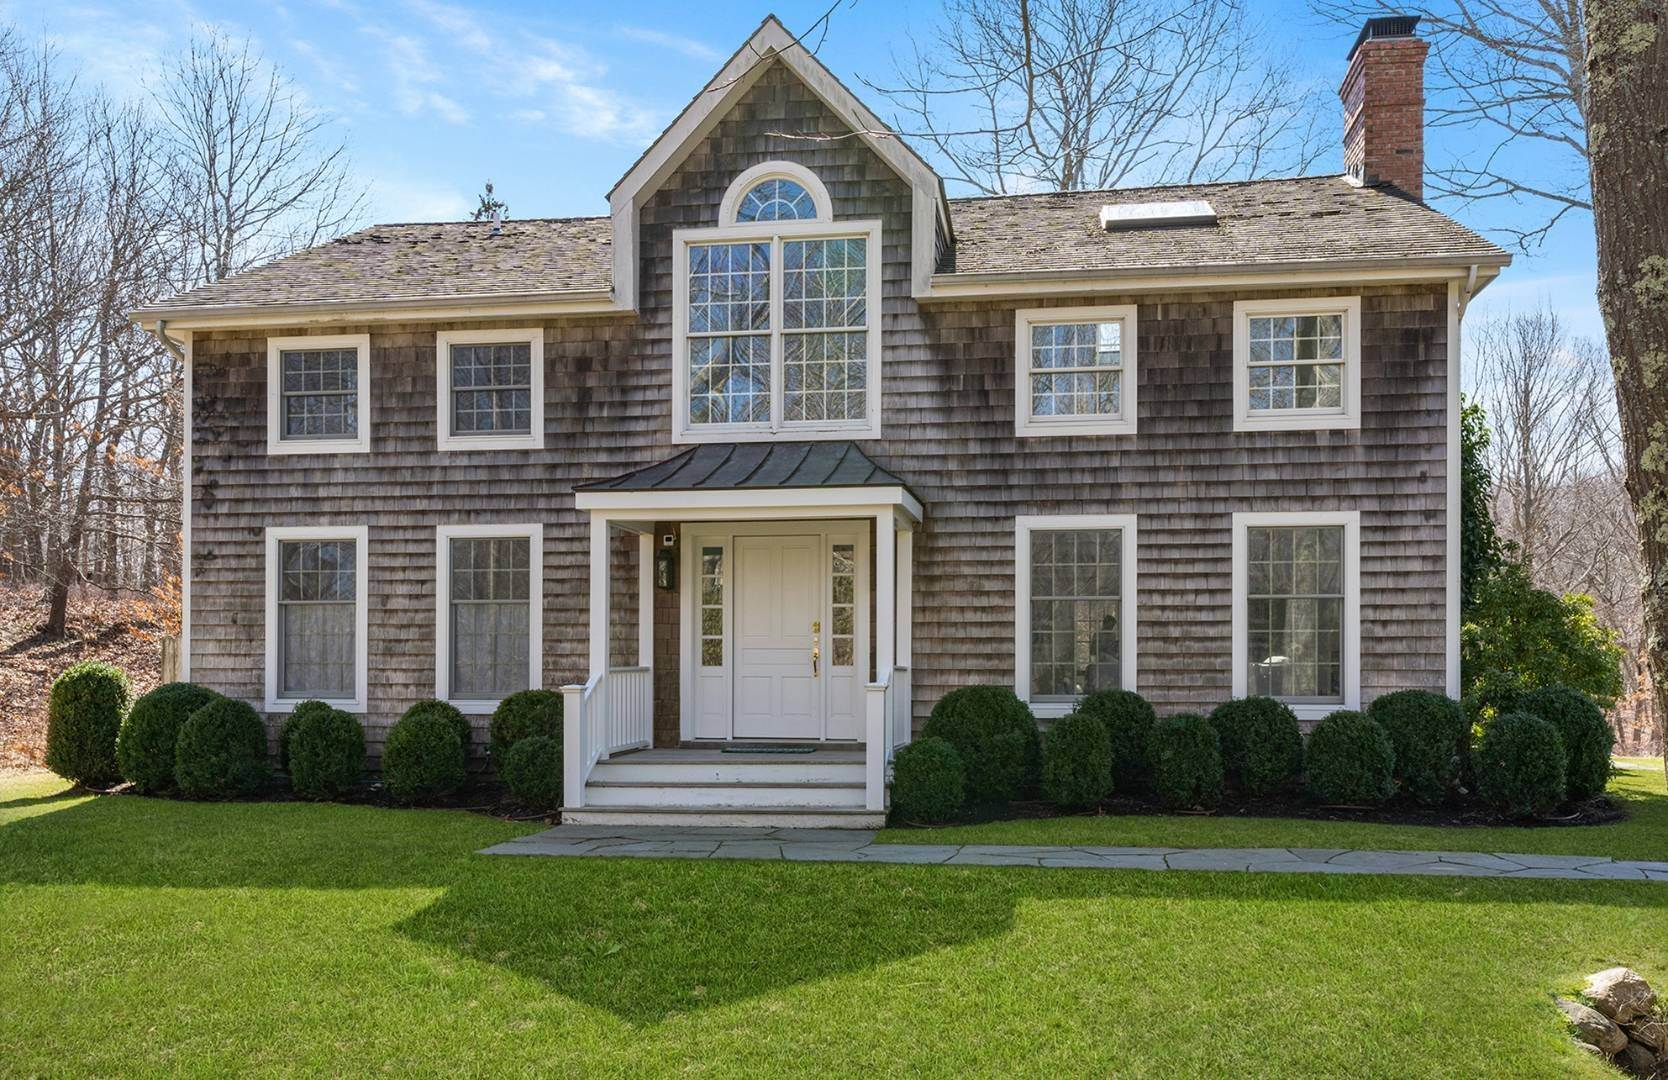 Single Family Home at Amagansett Summer Rental On 3.7 Secluded Acres 562 Accabonac Road, Amagansett, NY 11937